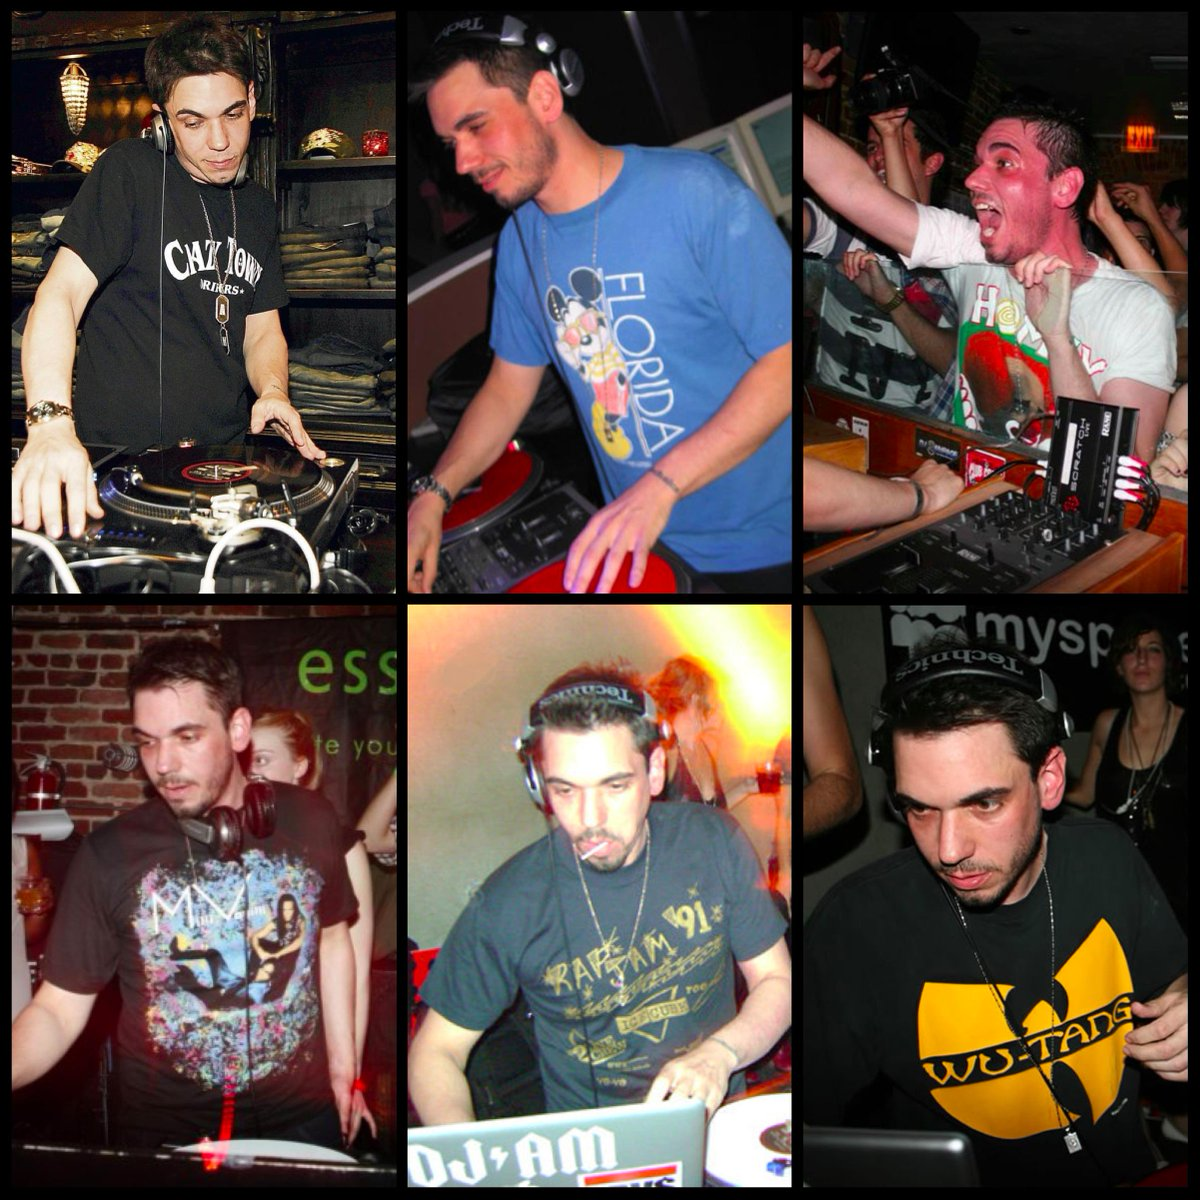 More of DJ AM's classic vintage tees are up on the @djamdoc Indiegogo page: http://t.co/YJ8xBz7Vf2 #djam #djamdoc http://t.co/0OhKIks913